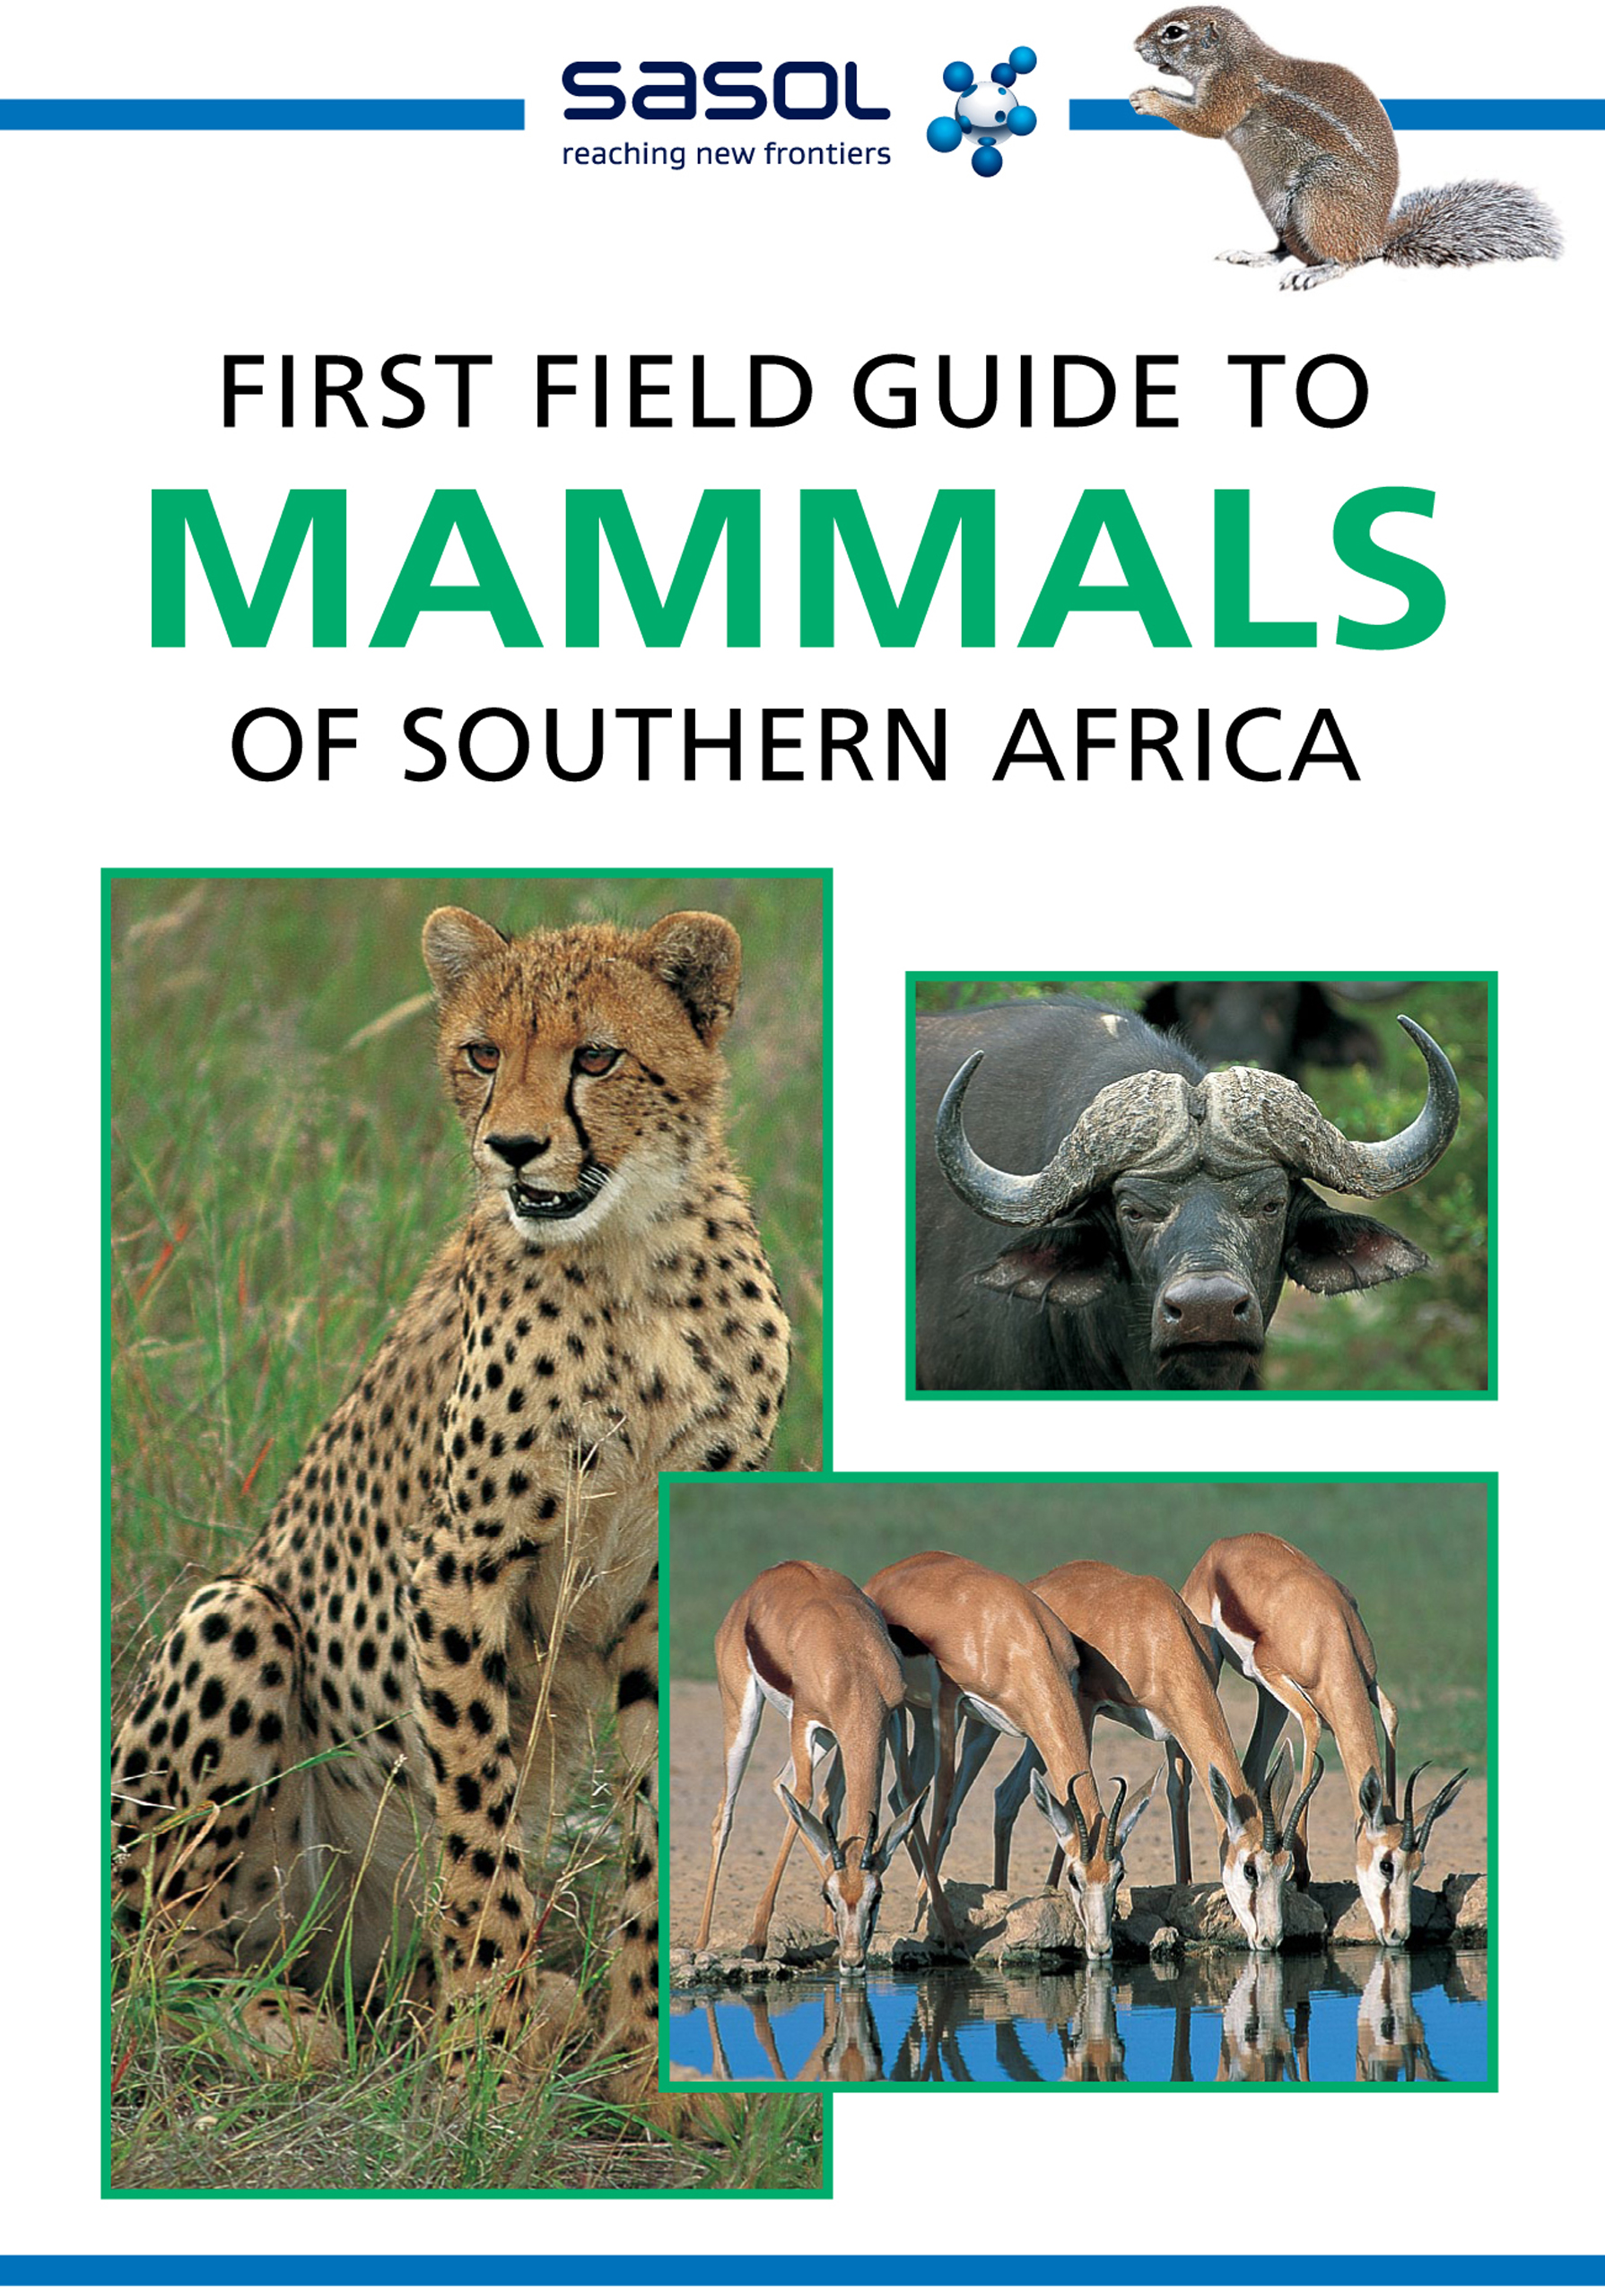 Picture of Sasol first field guide to mammals of Southern Africa